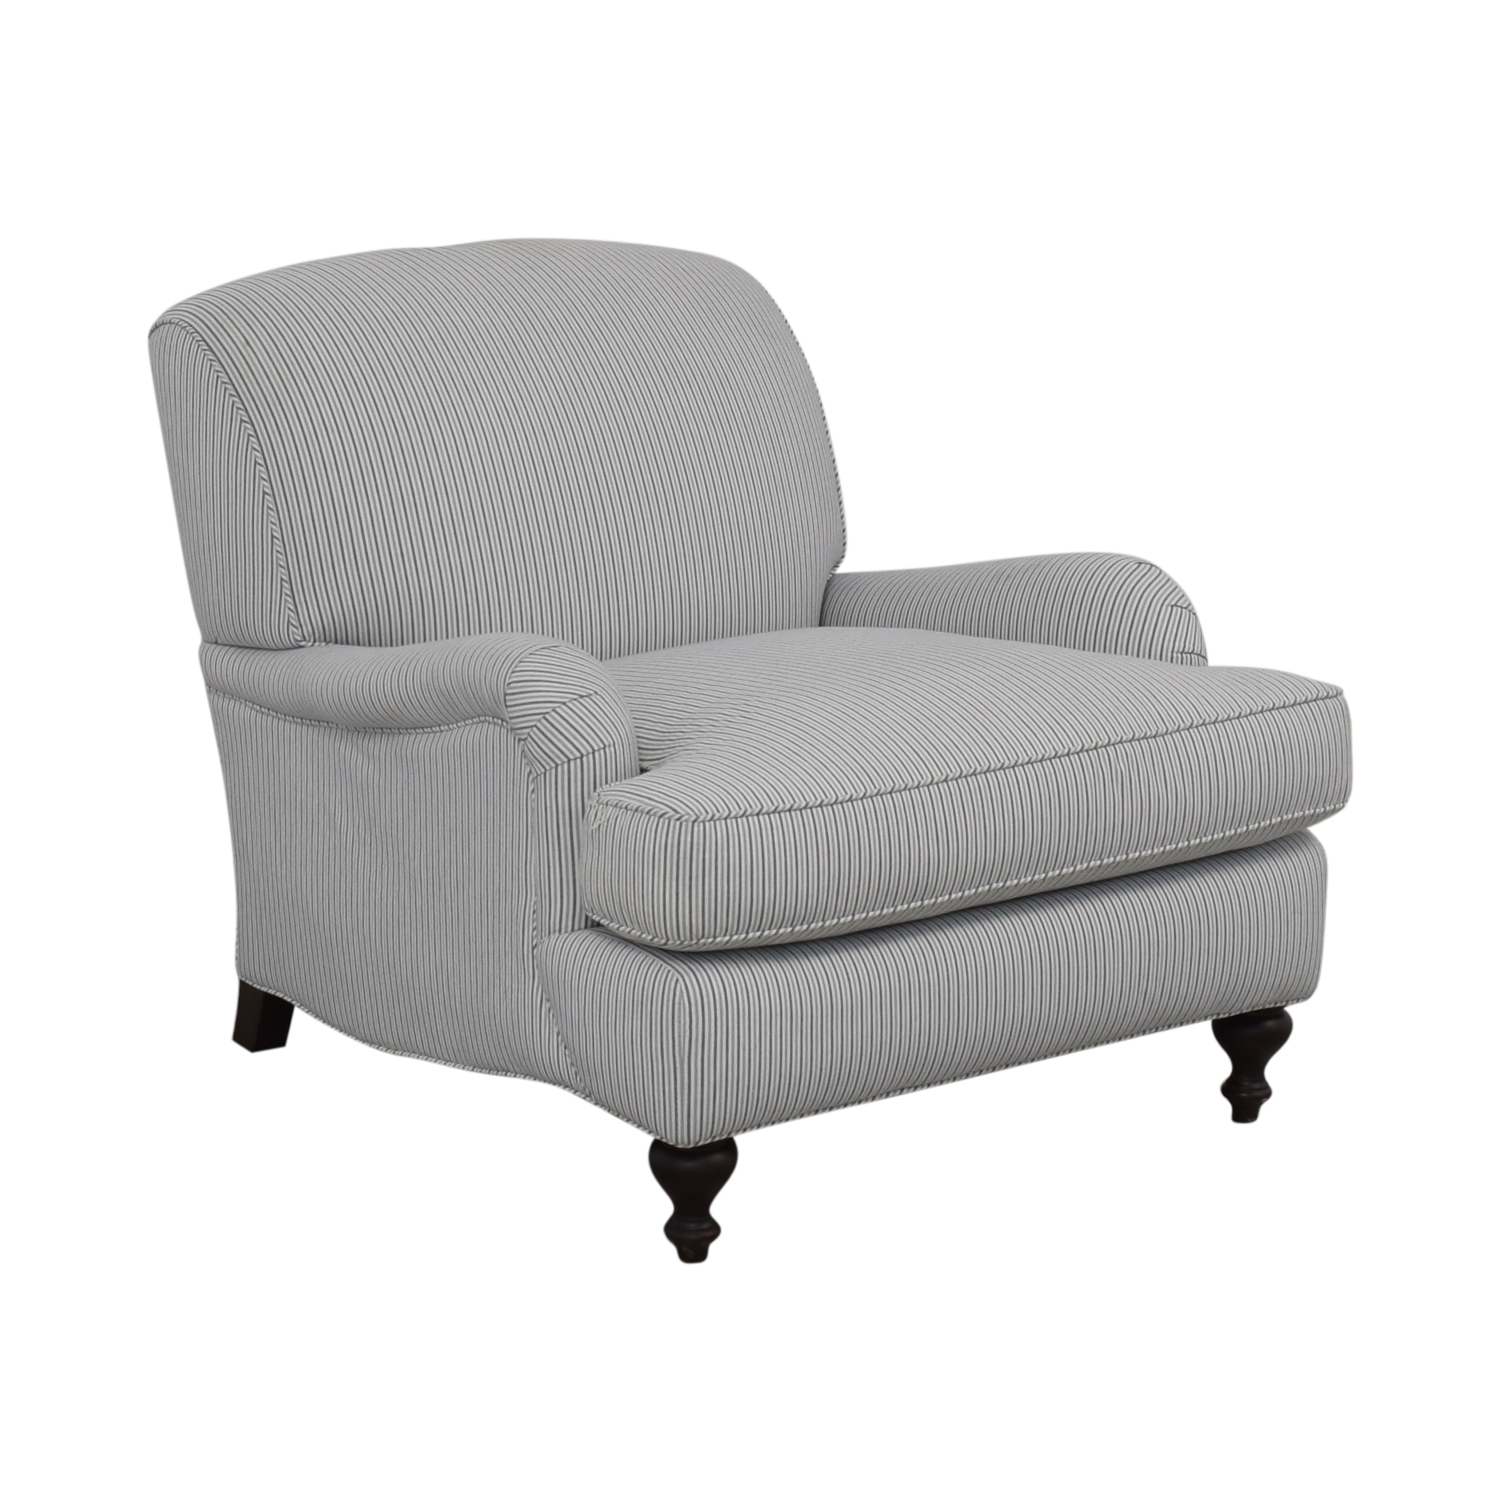 Serena & Lily Miramar Upholstered Side Chair Serena & Lily